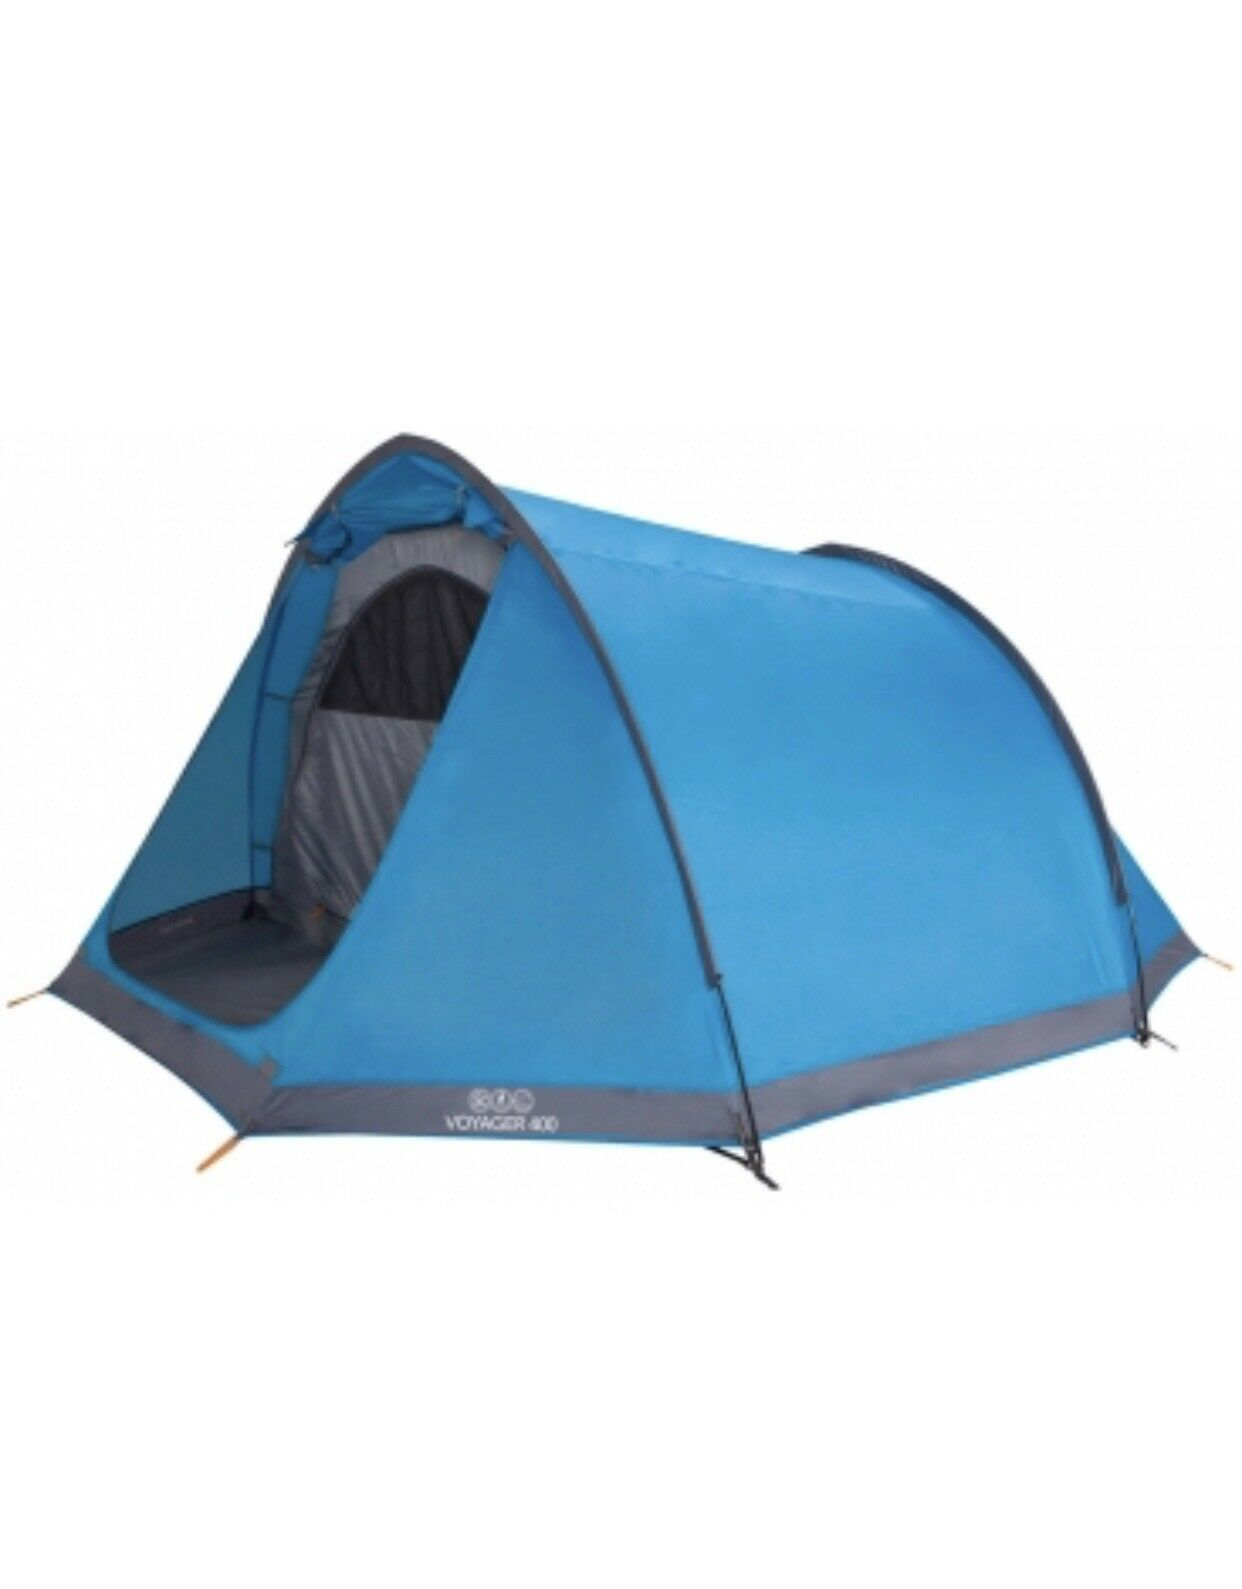 Vango Voyager 400 Outdoor Tunnel Tent 4 Persons Man Spacious Family Camping bluee